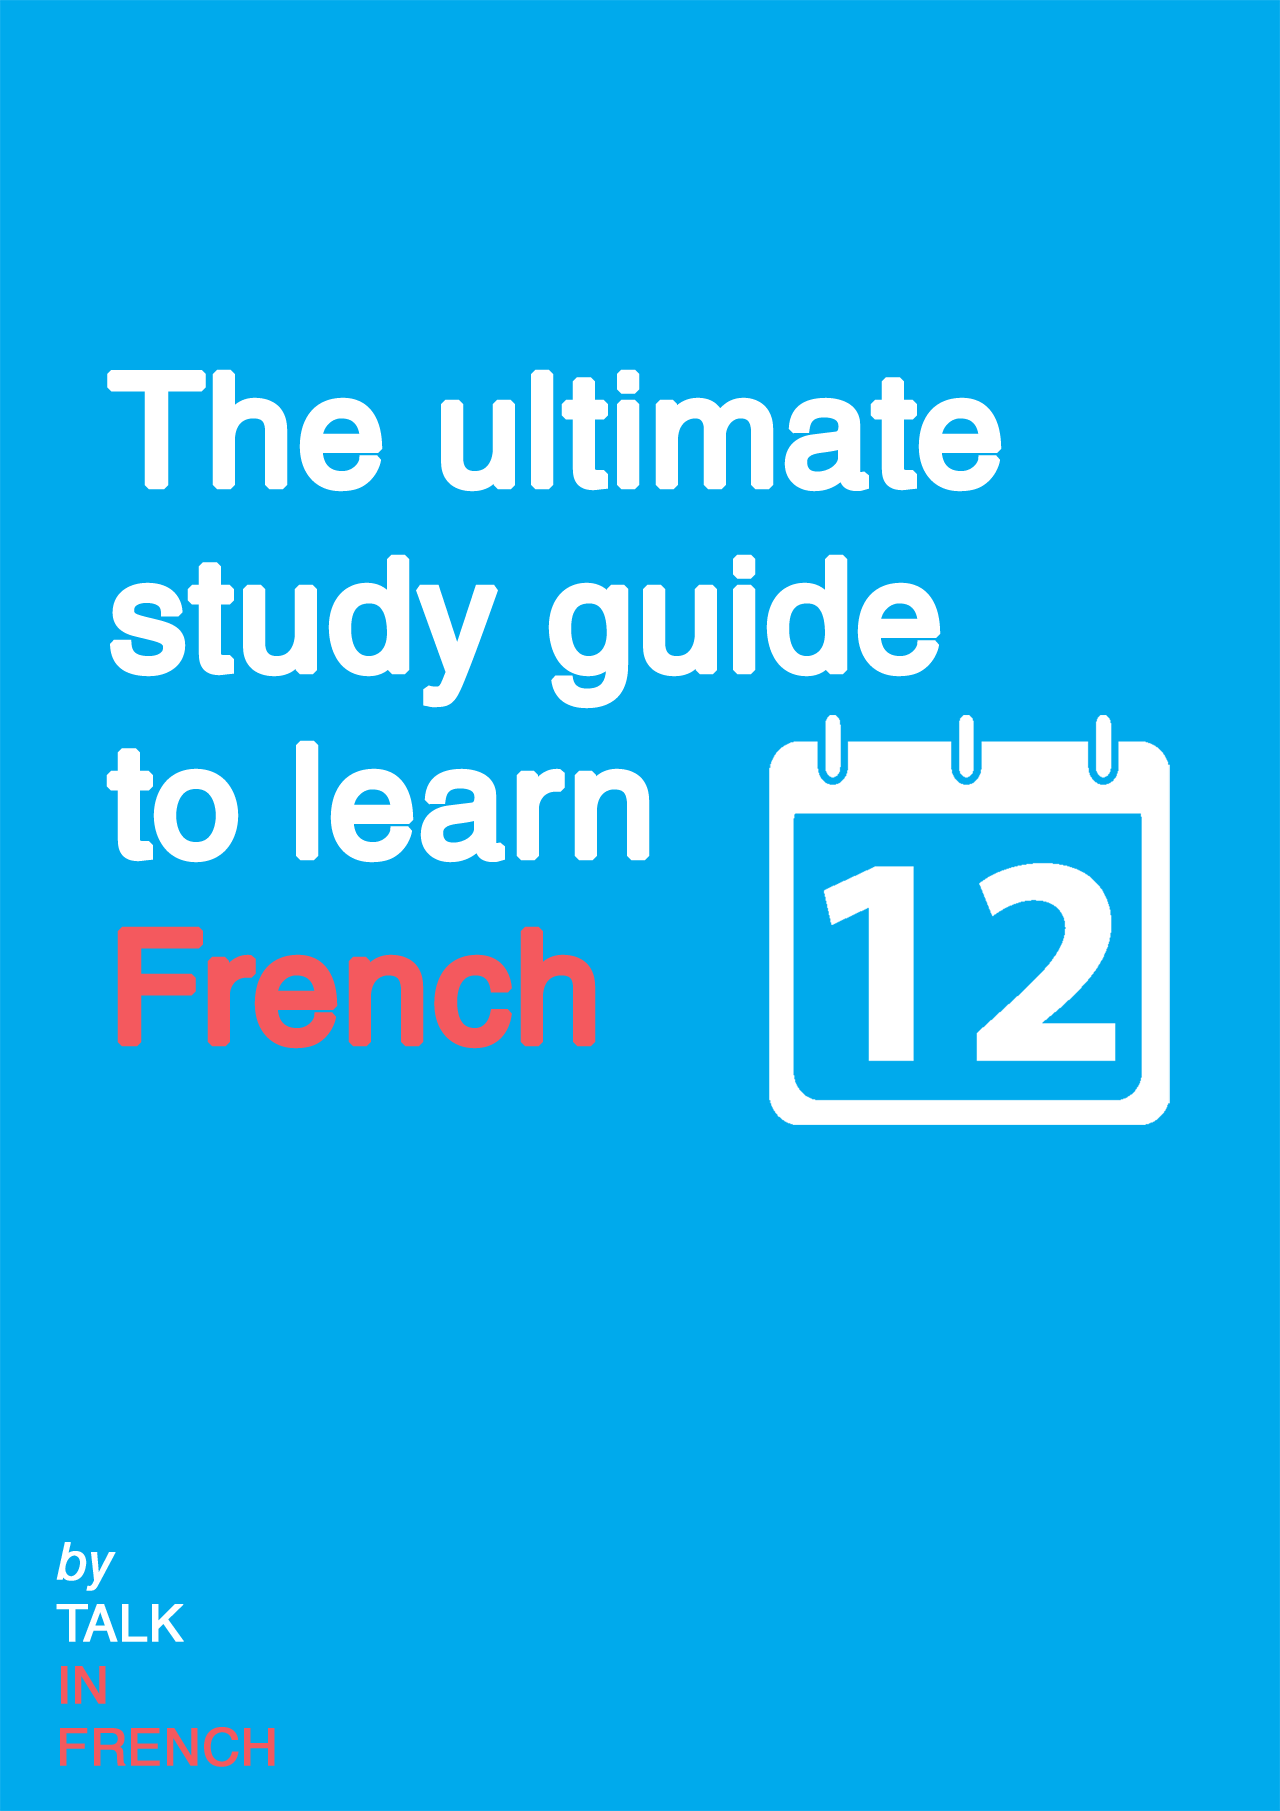 Learn French - LanguageGuide.org